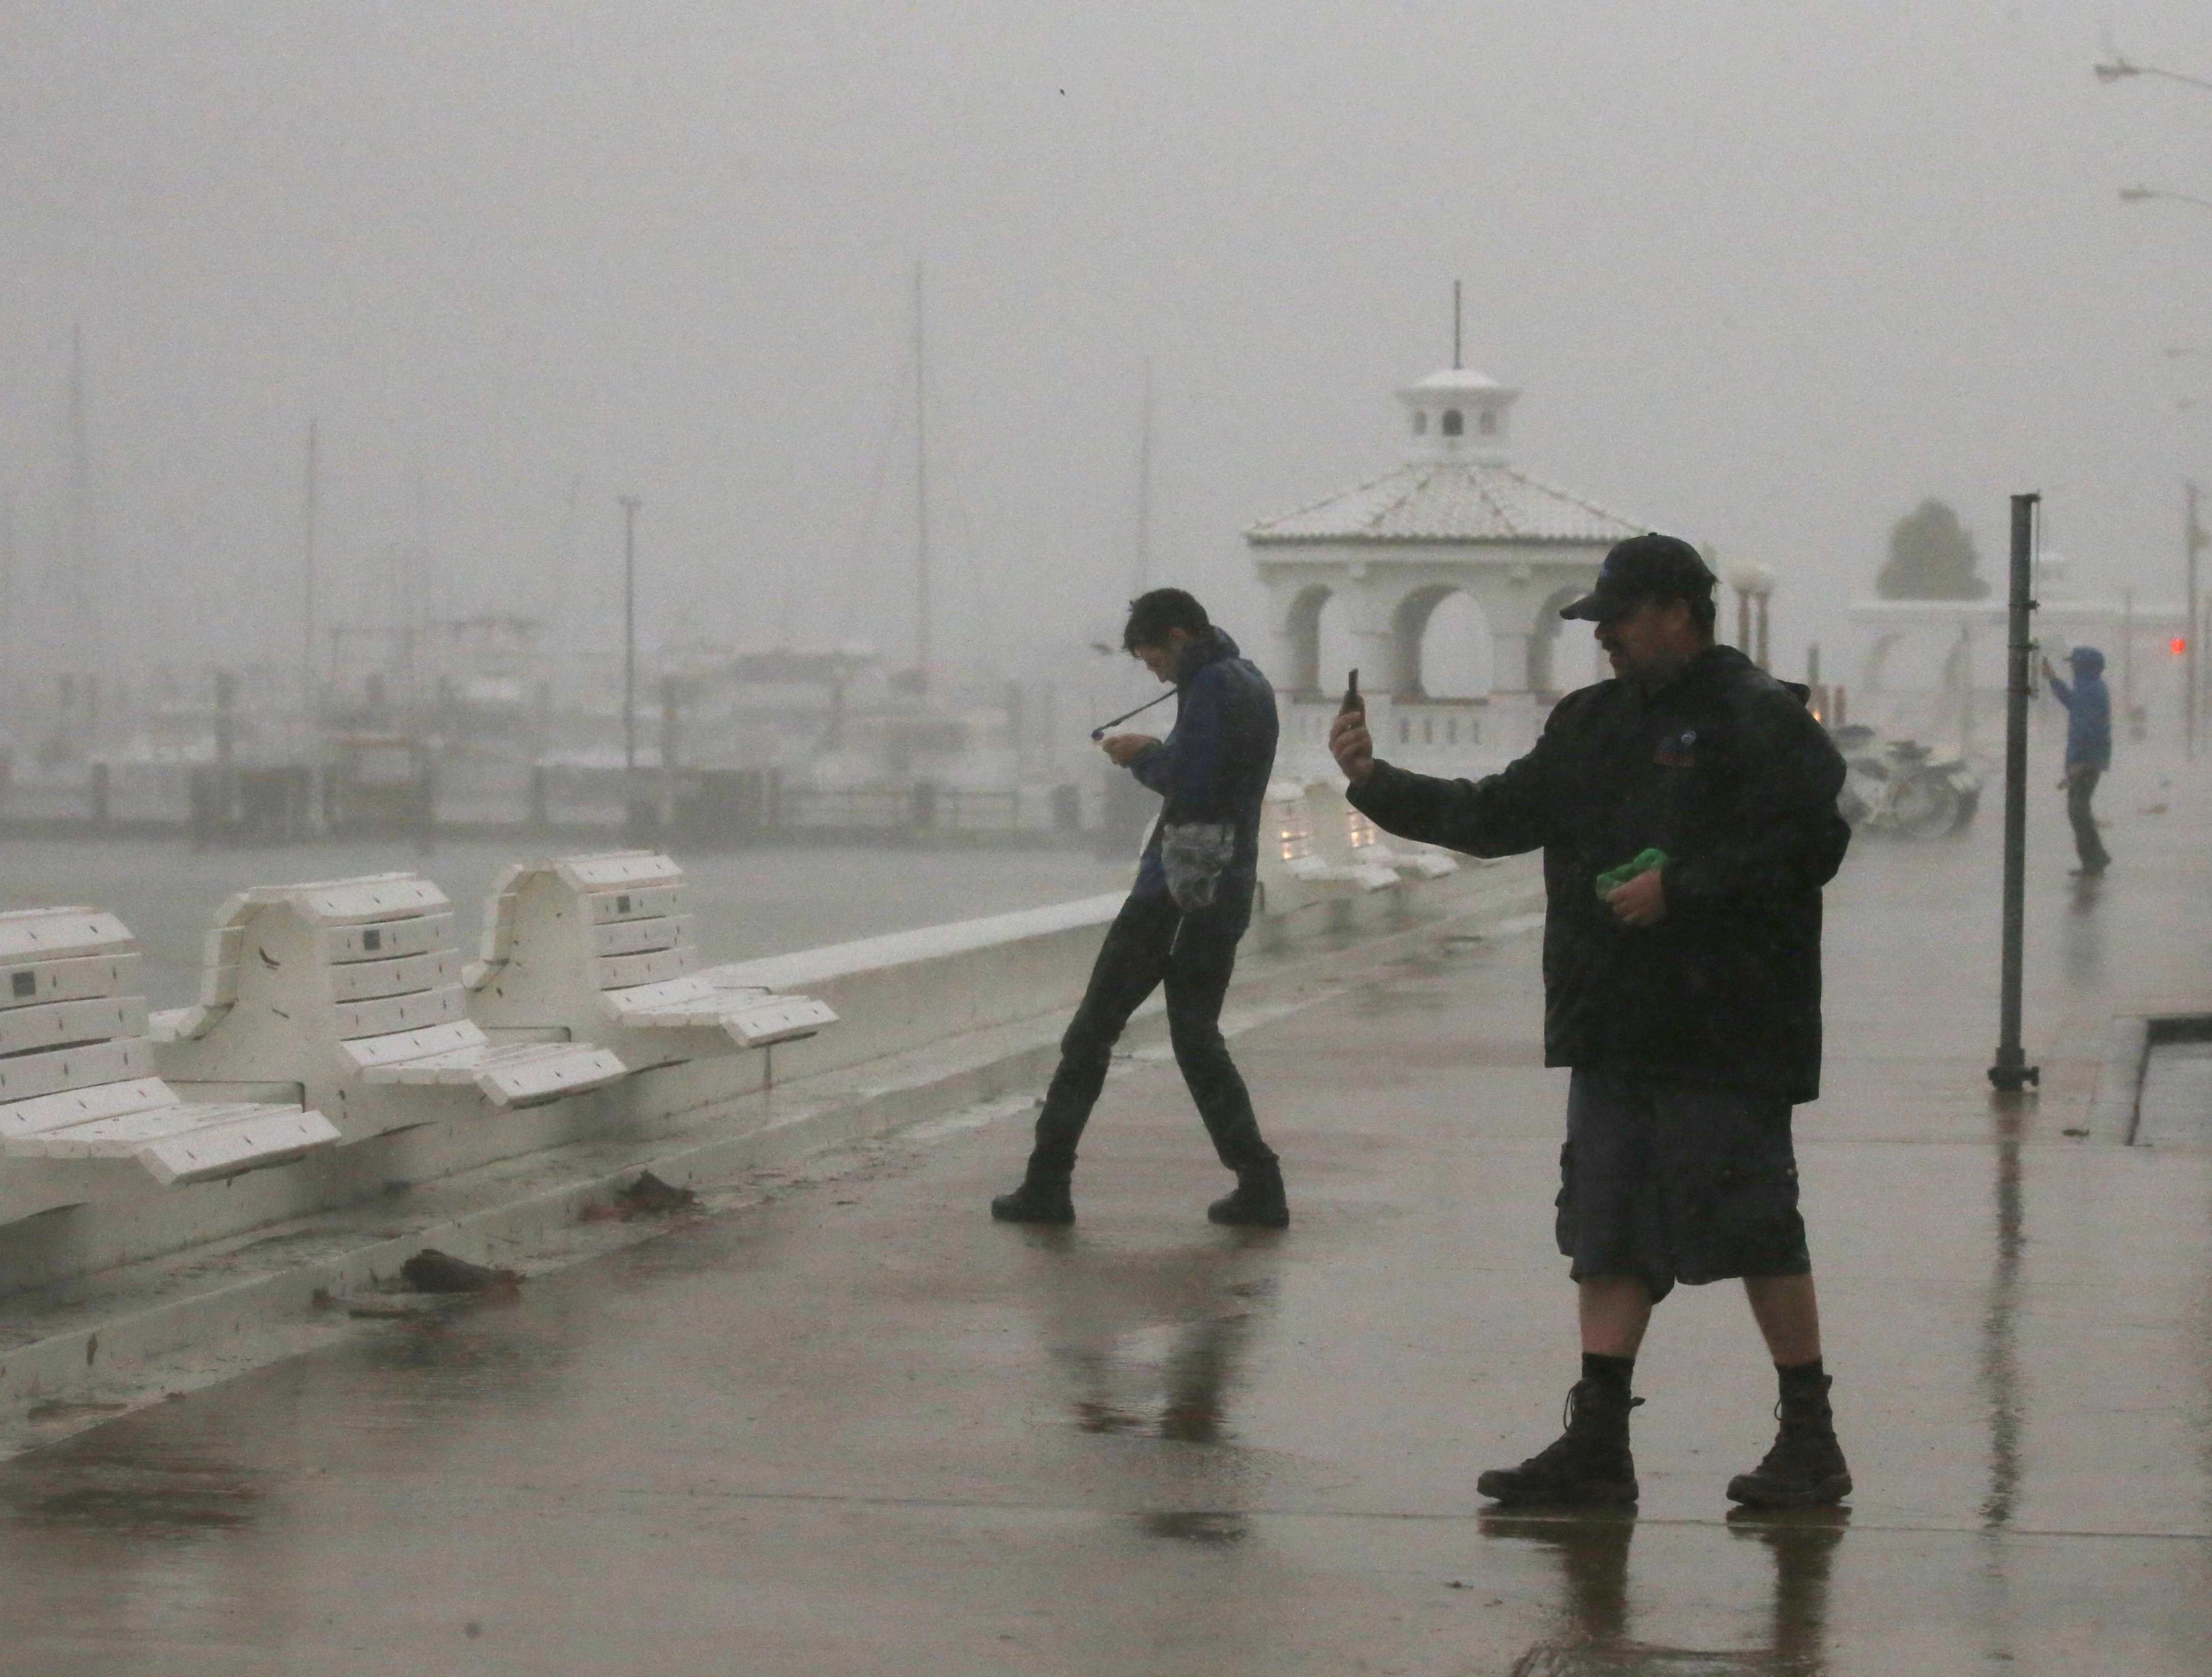 Image: A storm chaser films himself on a camera phone as Hurricane Harvey approaches, on the boardwalk in Corpus Christi